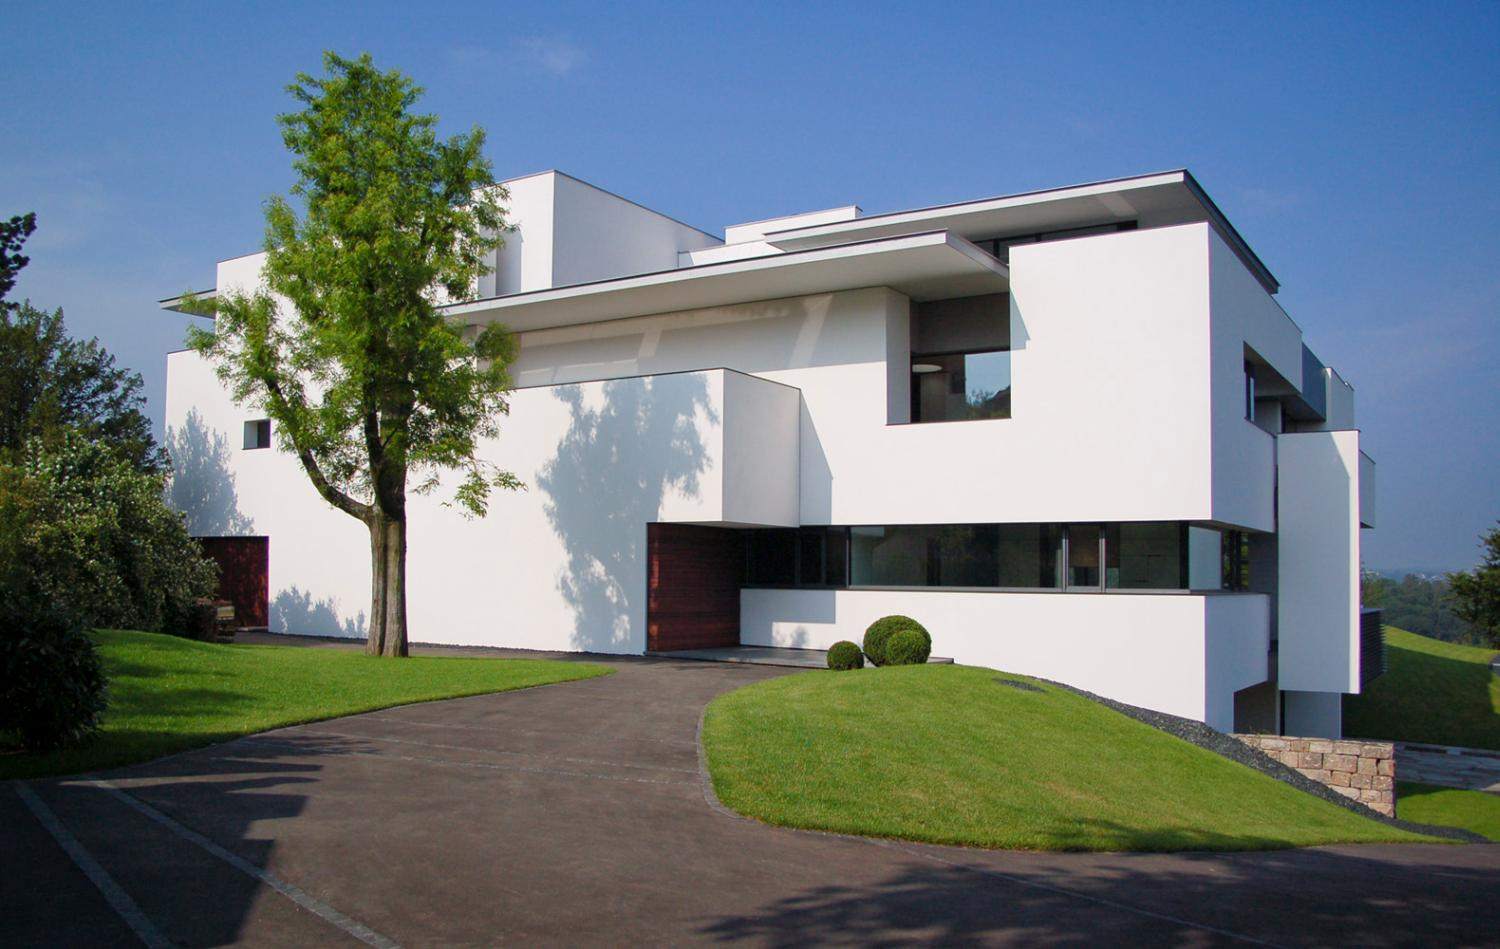 Gallery of oberen berg house alexander brenner 5 for Modern house design bloxburg